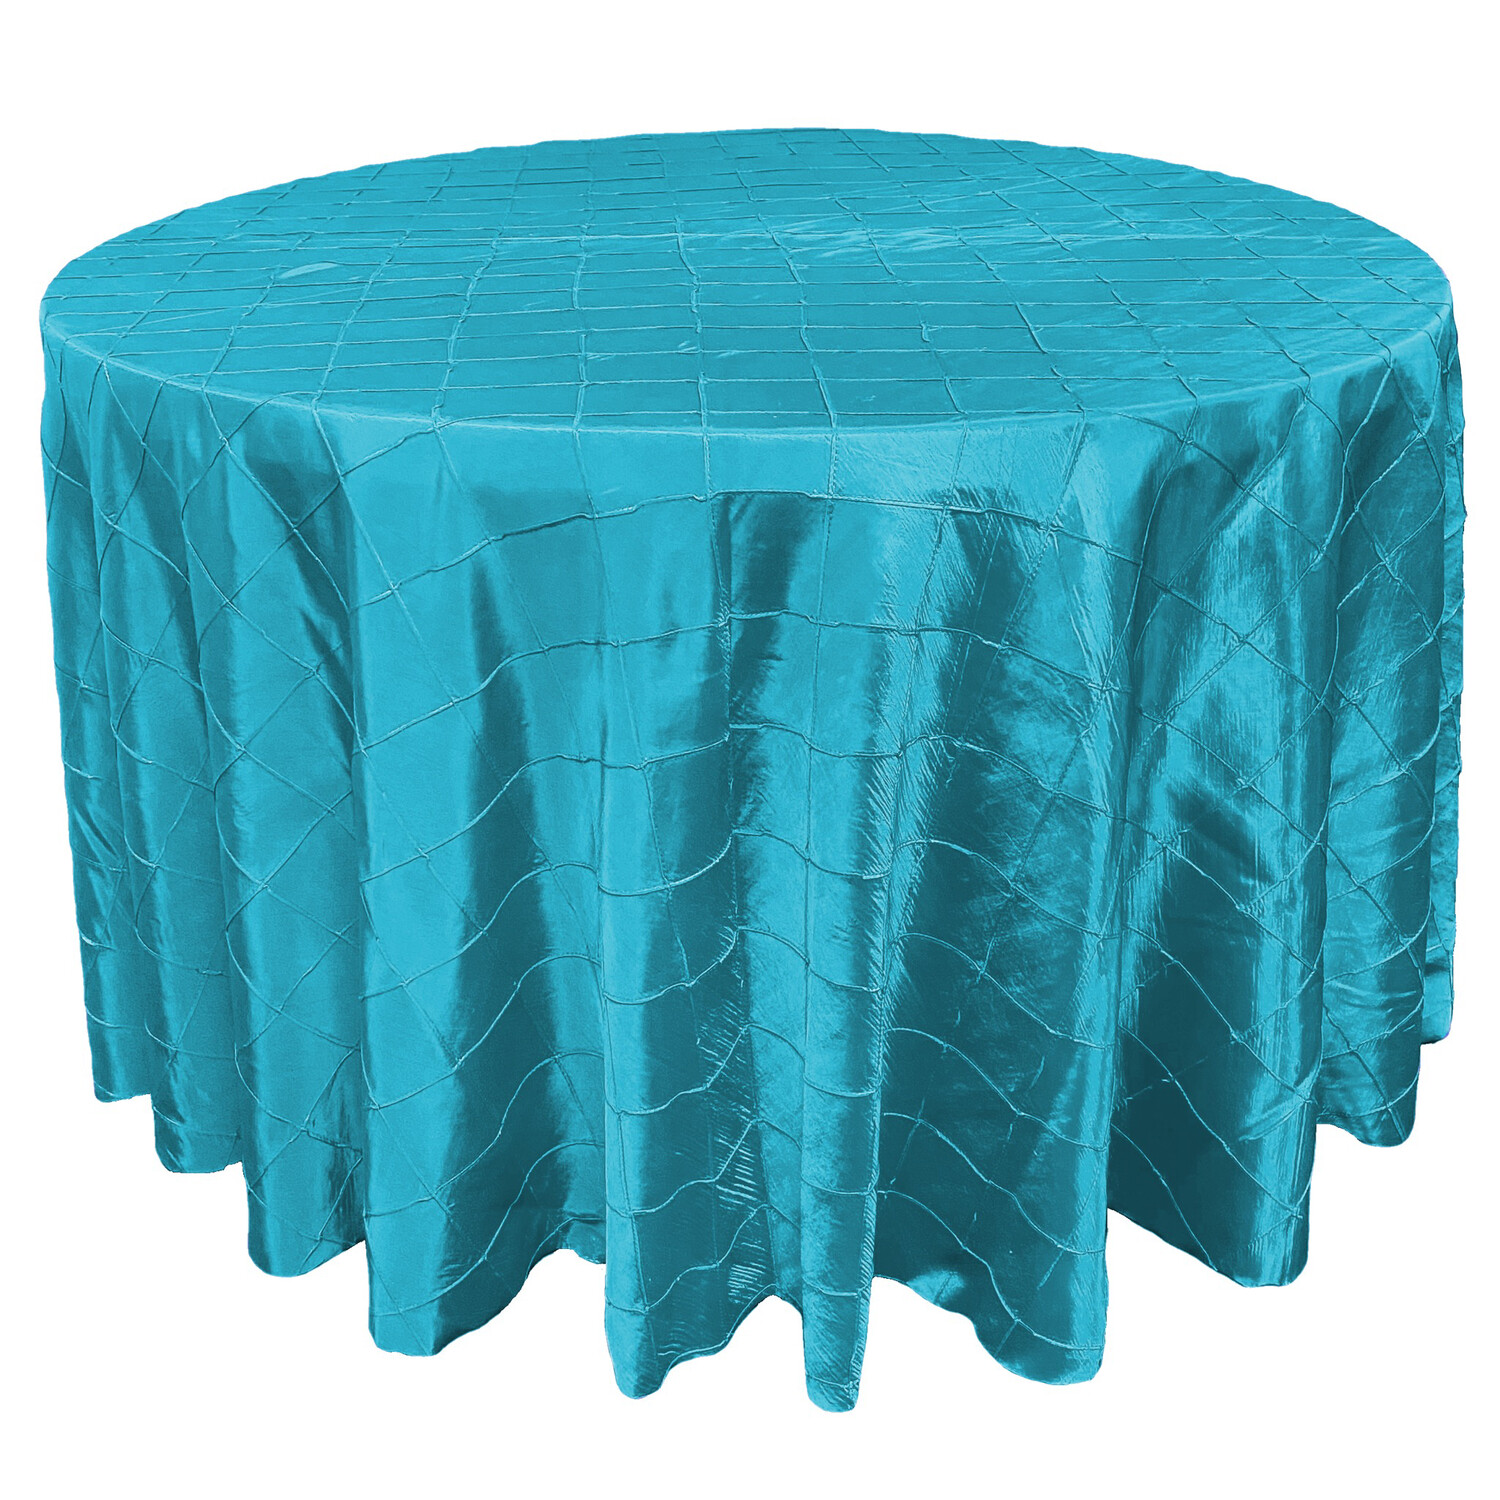 Turquoise Pintuck Linens